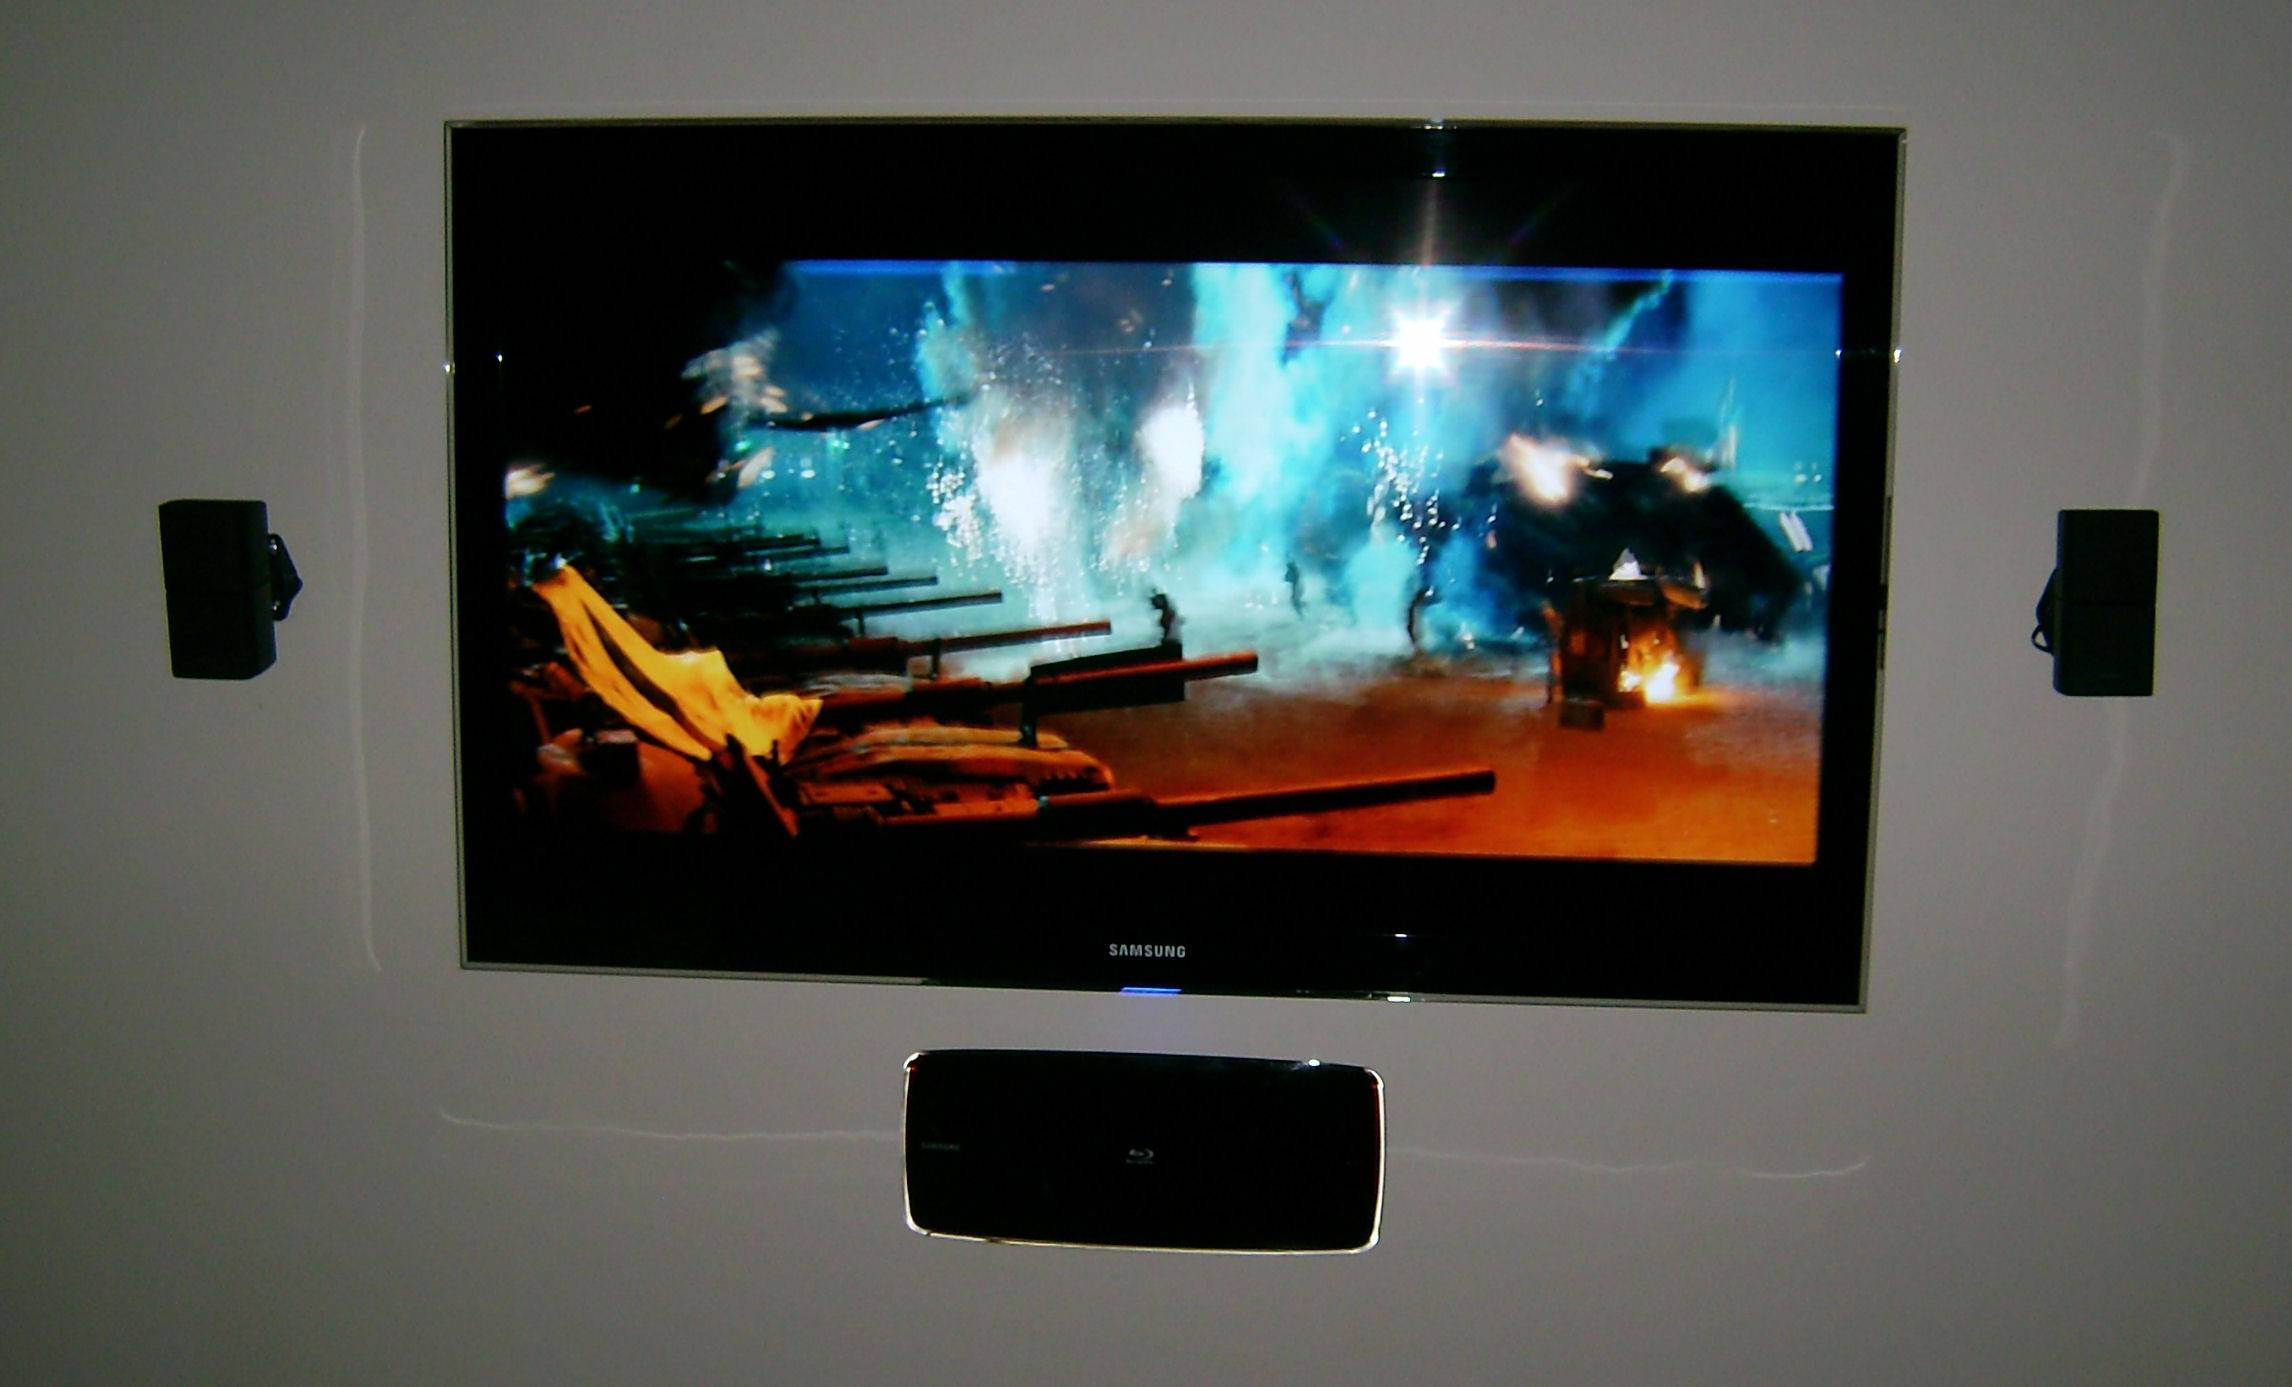 """Premium 65"""" Samsung LED TV Installed with 2.1 Bose Surround System & Samsung Blu-Ray Player Mounted"""